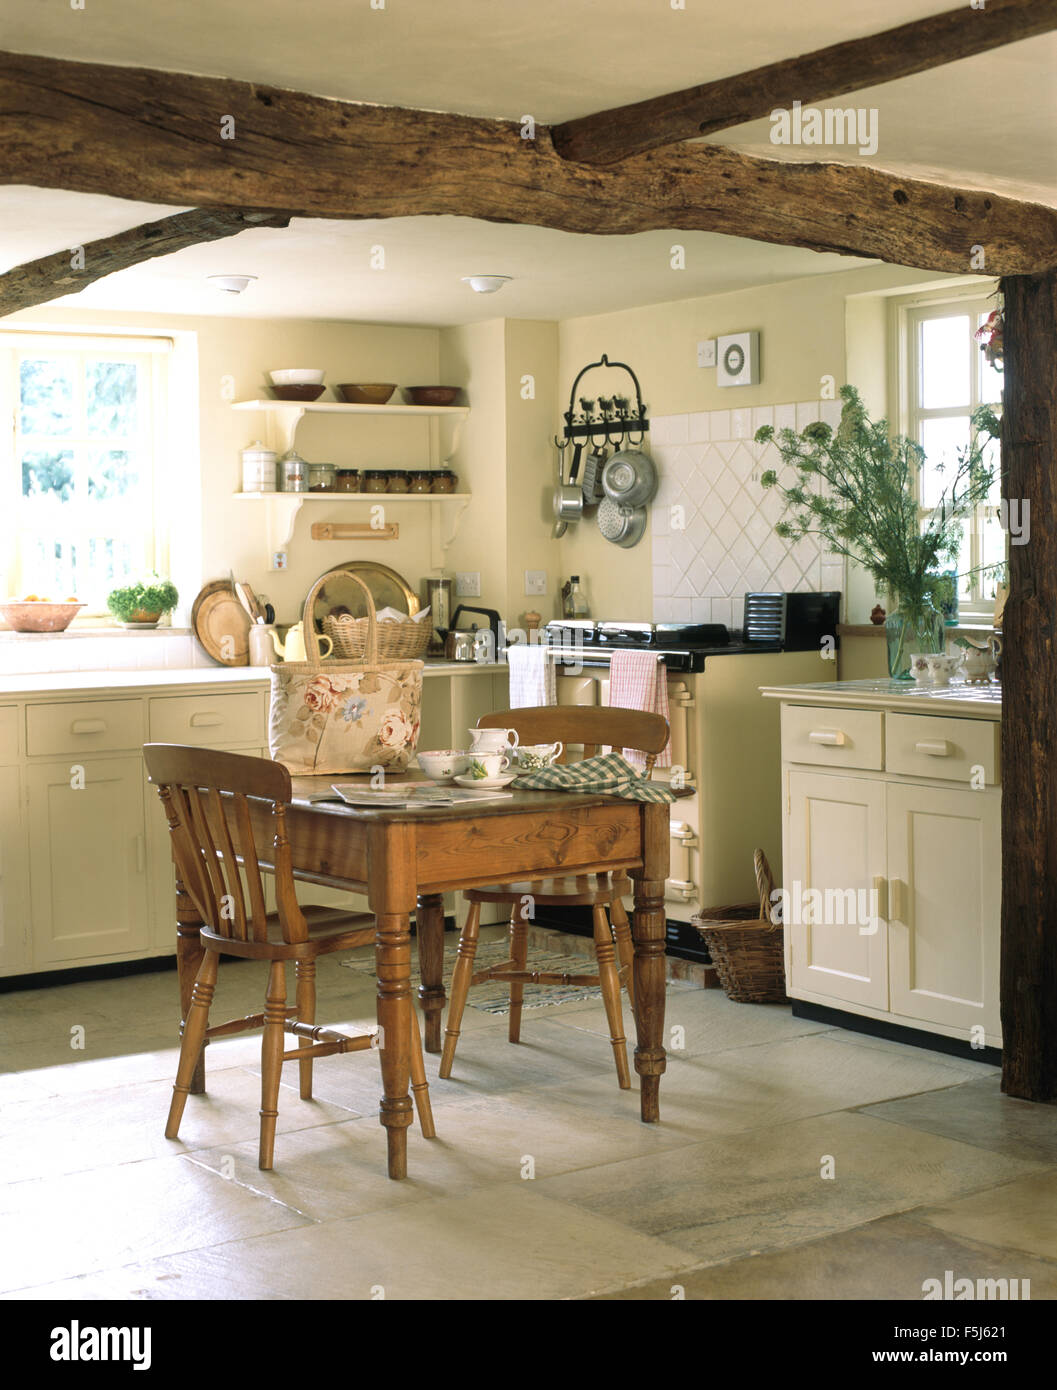 Vintage Pine Dining Table And Chairs In A Cream Cottage Kitchen With A  Cream Range Oven And Rustic Wooden Ceiling Beams